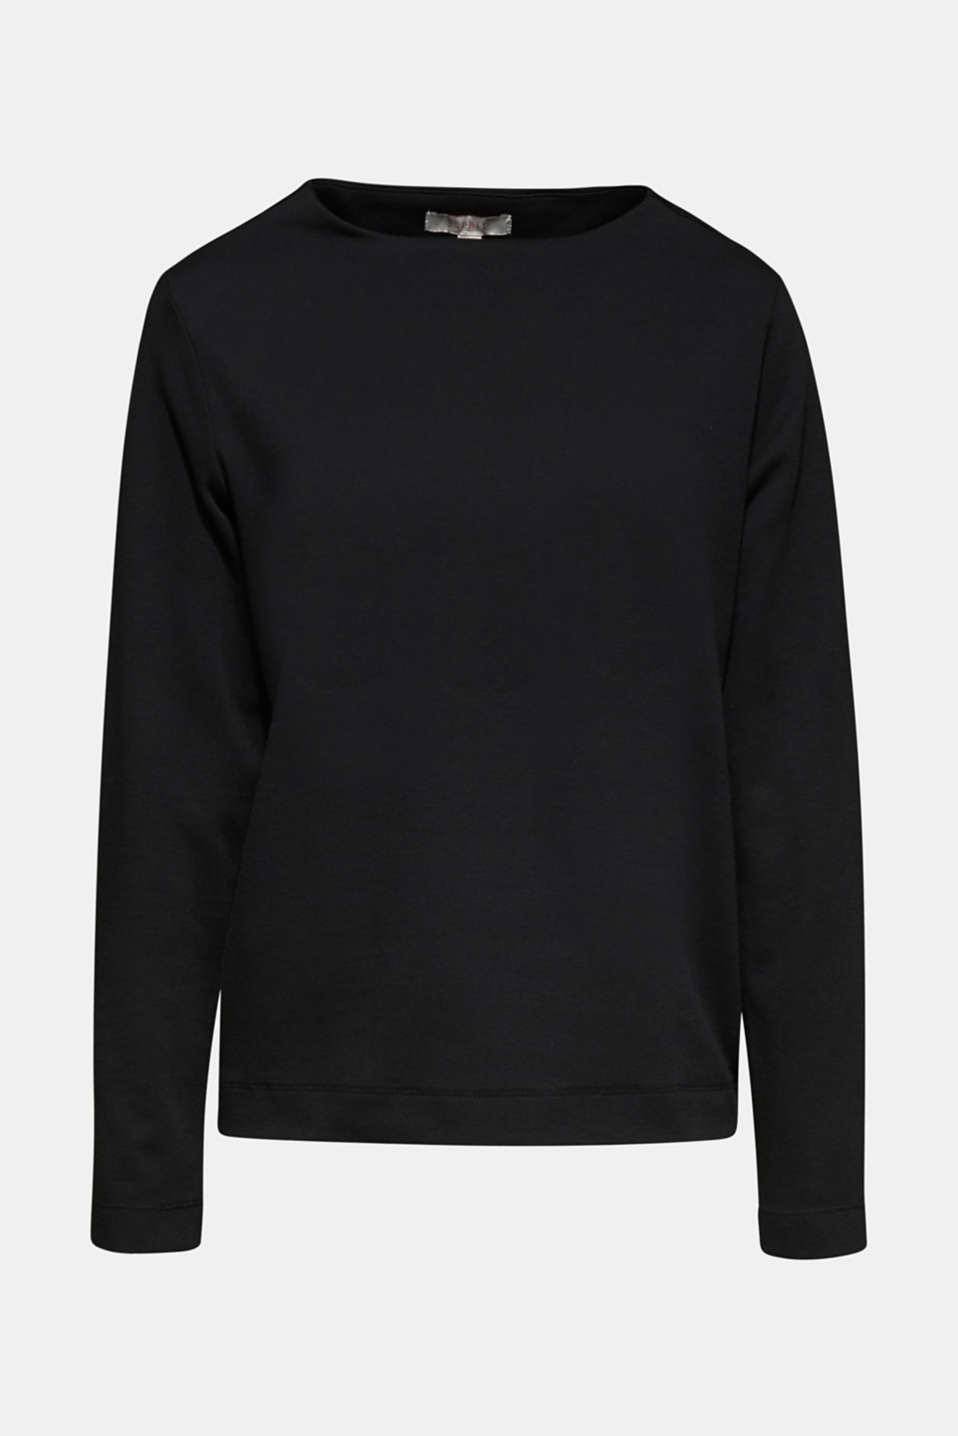 Boxy stretch jersey top, BLACK, detail image number 4